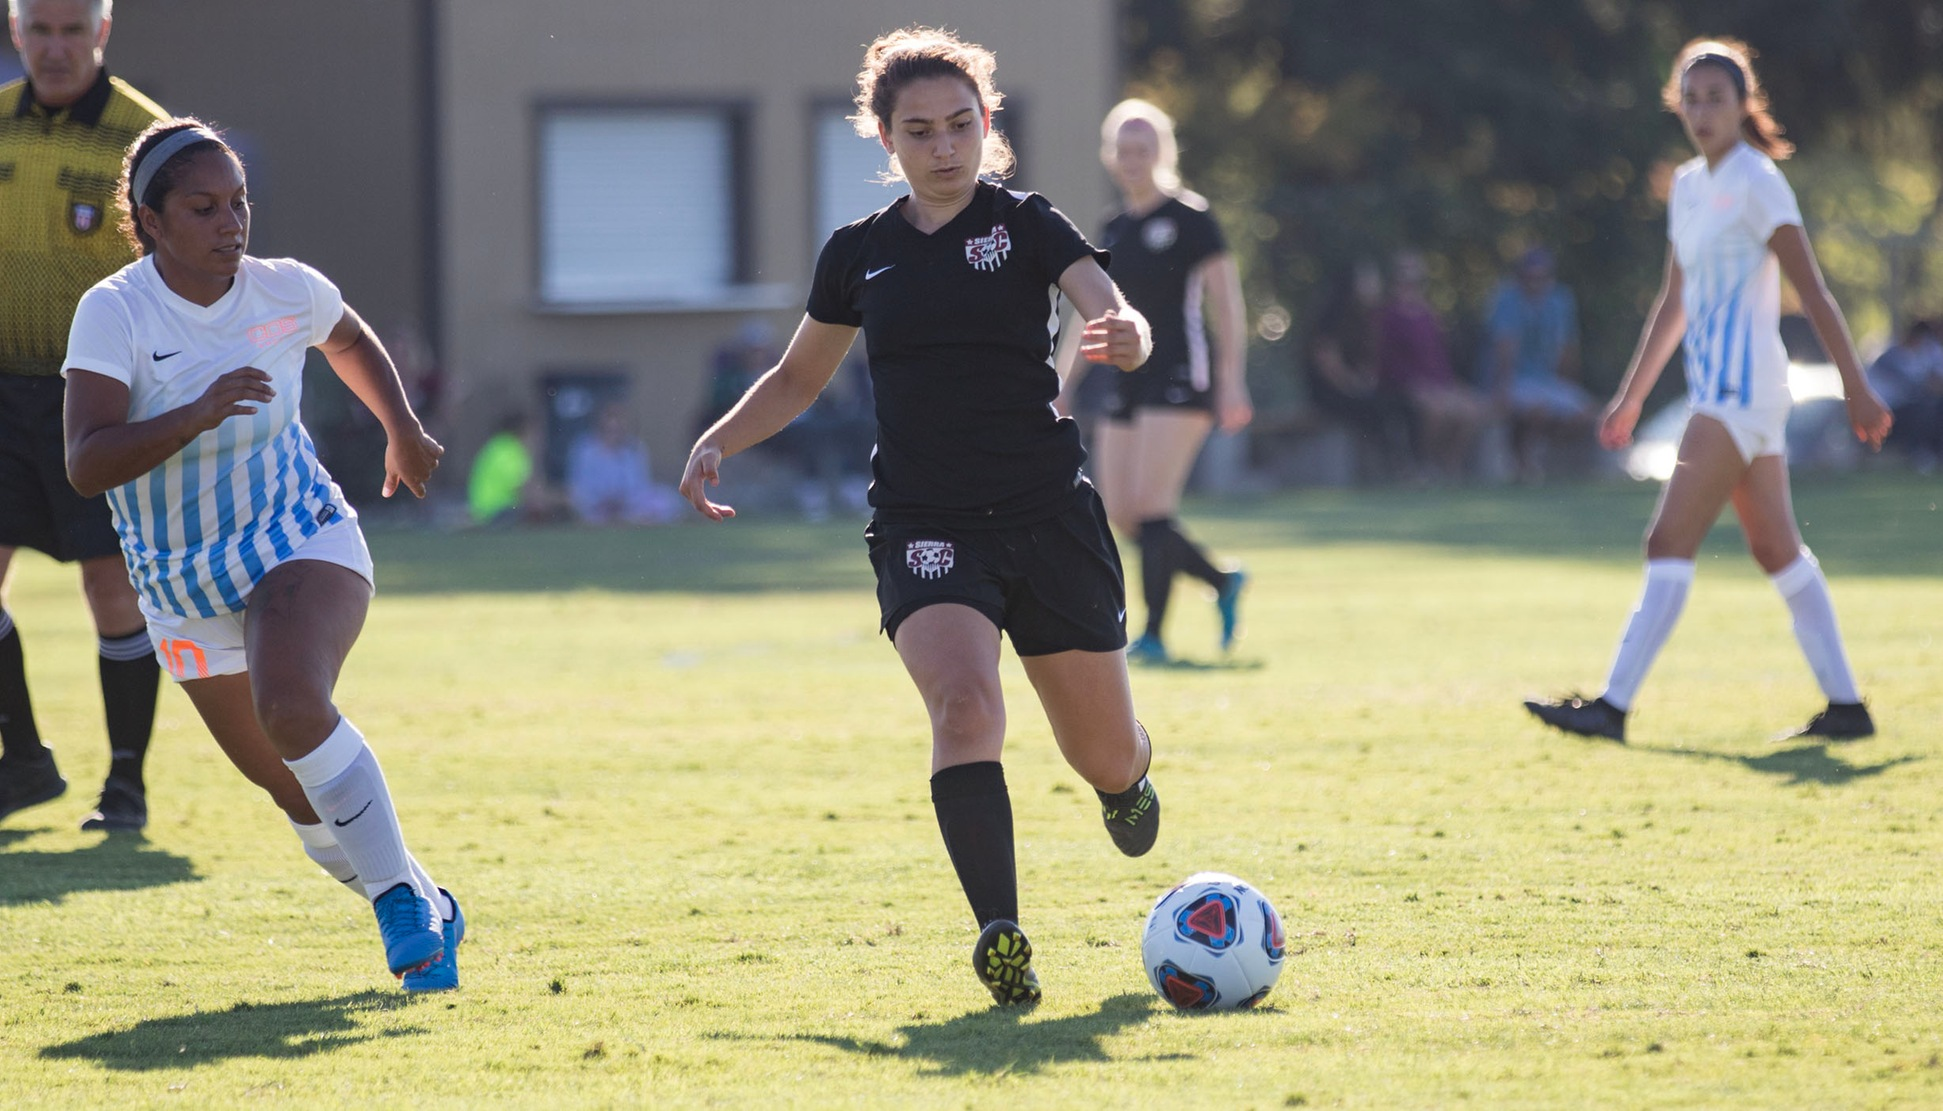 Sophomore Forward Christina Kanellou (08) scored one of the 12 goals in Sierra's 12-0 defeat of College of the Sequoias on Tuesday, August 28, 2018.